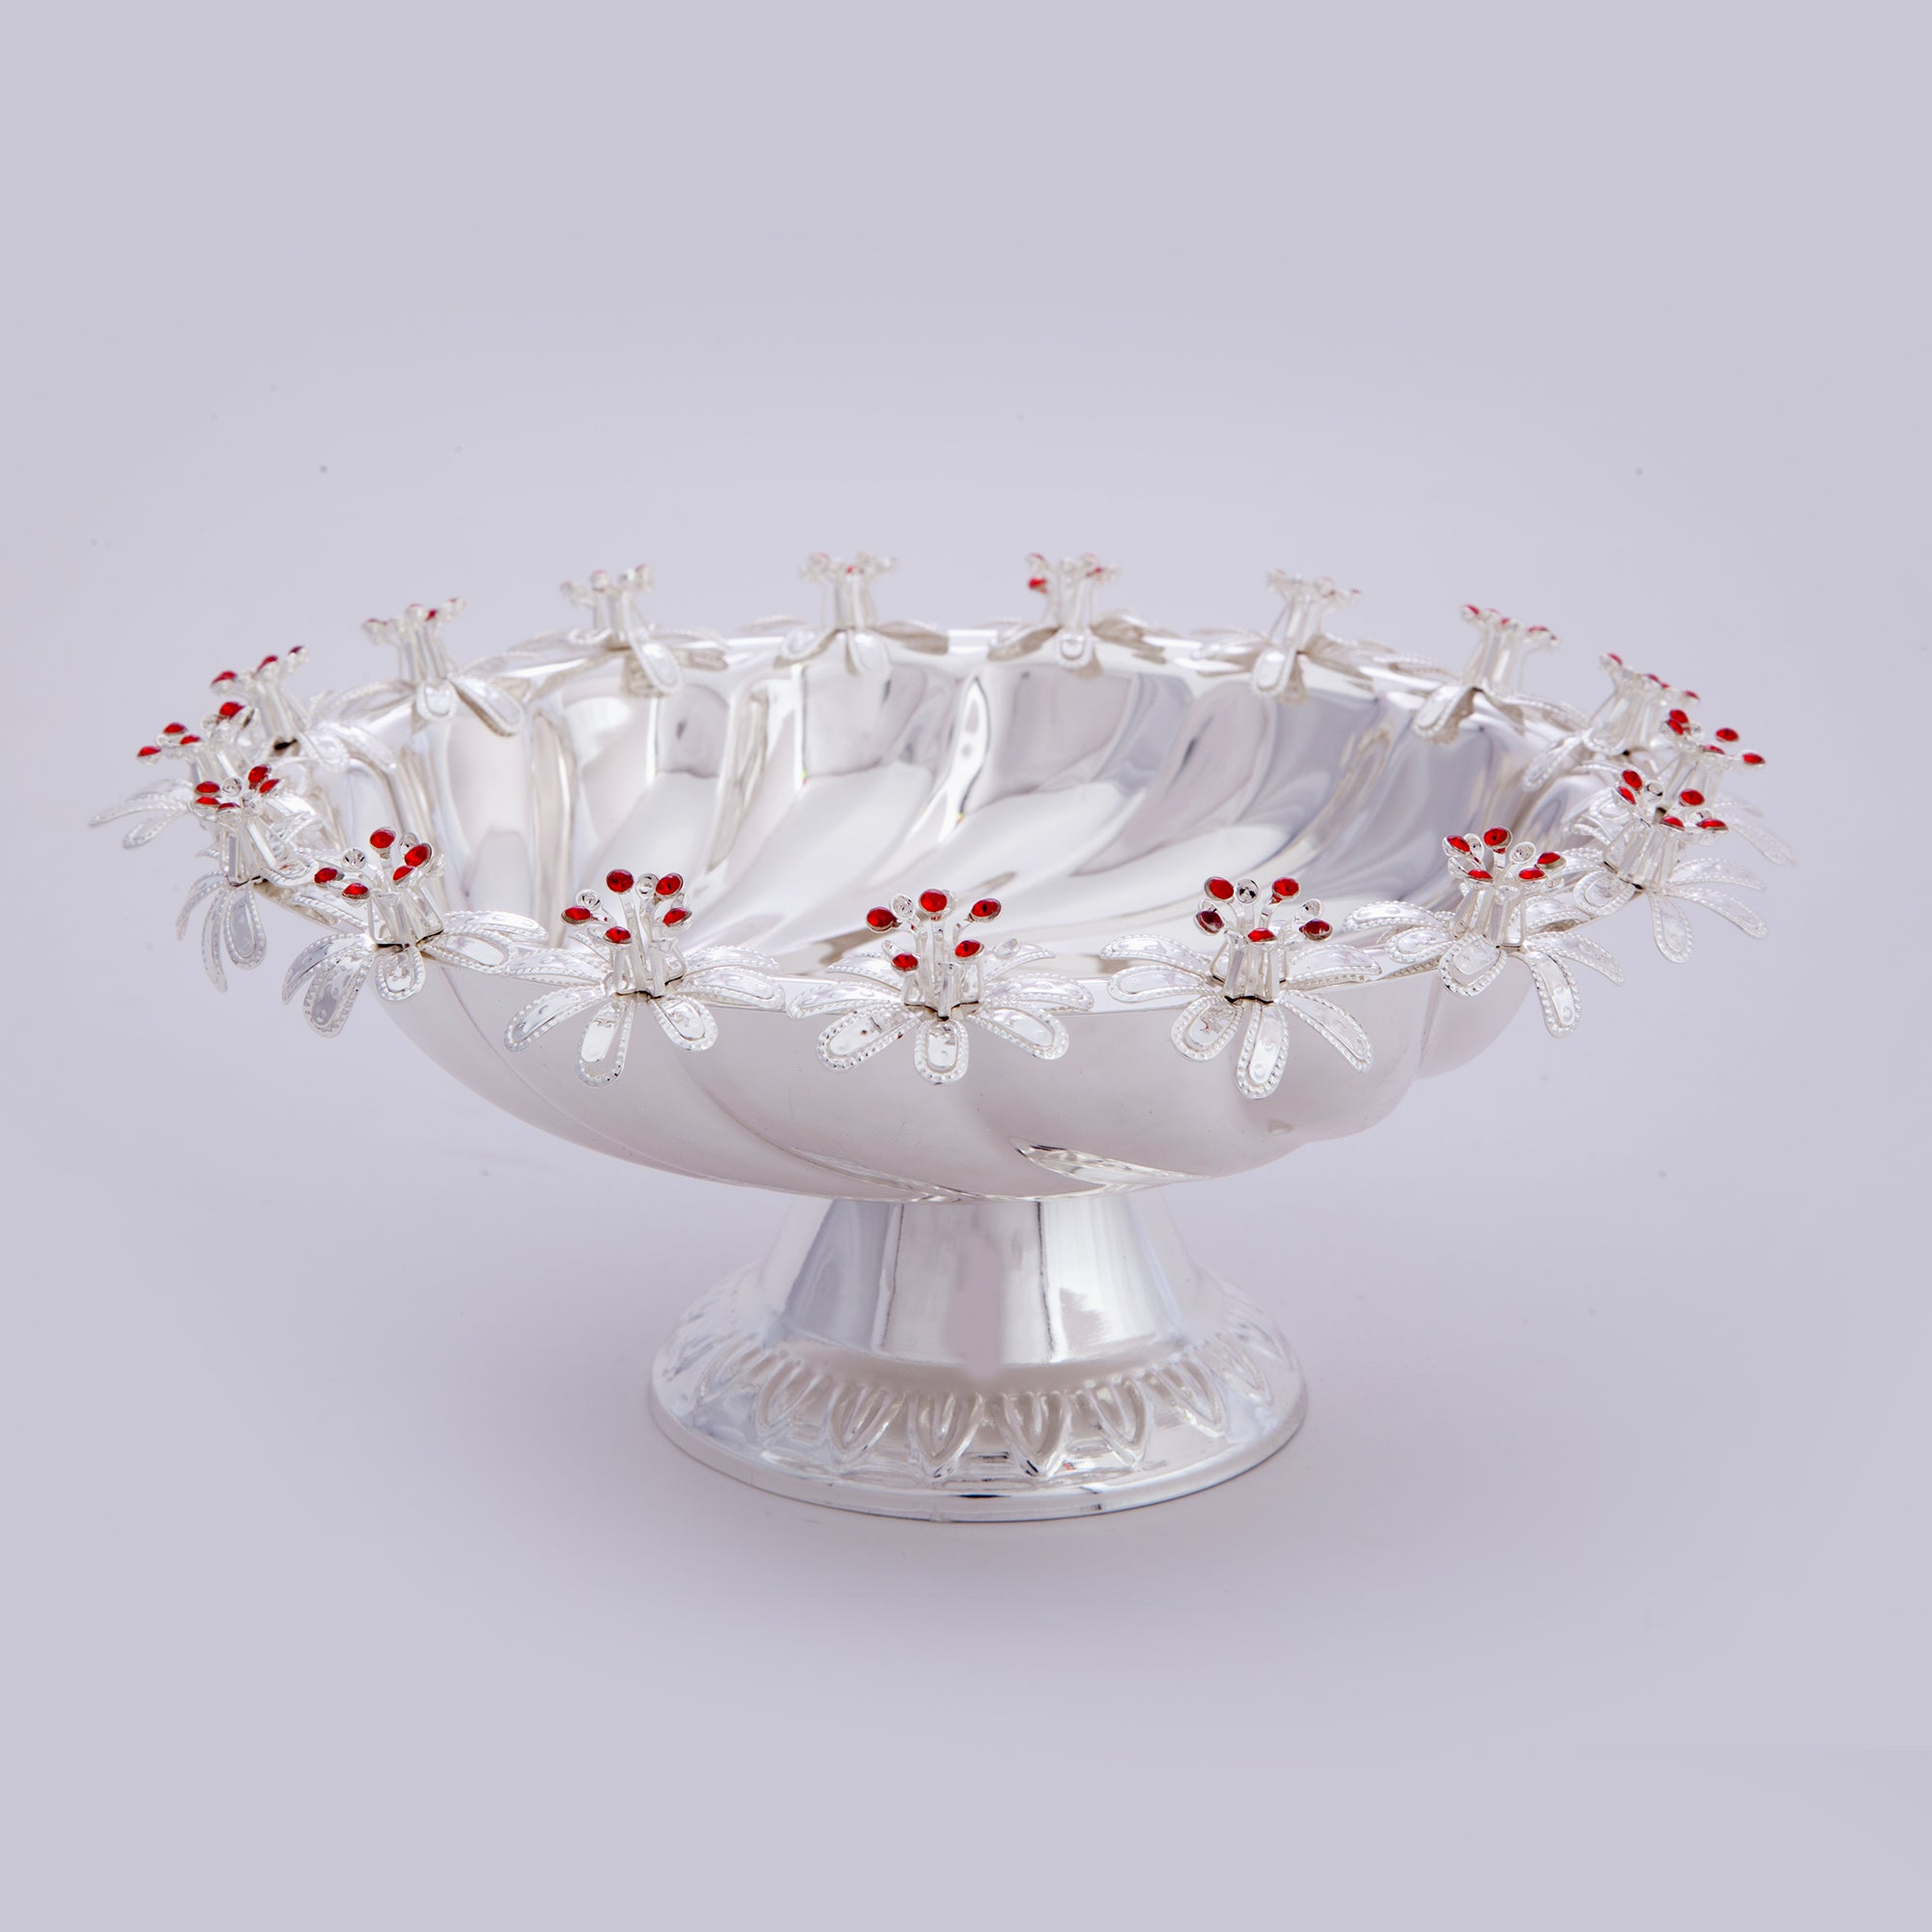 "Bowl, Flowers, Red stone, Base 9"" dia. - Barton,Son & Co."